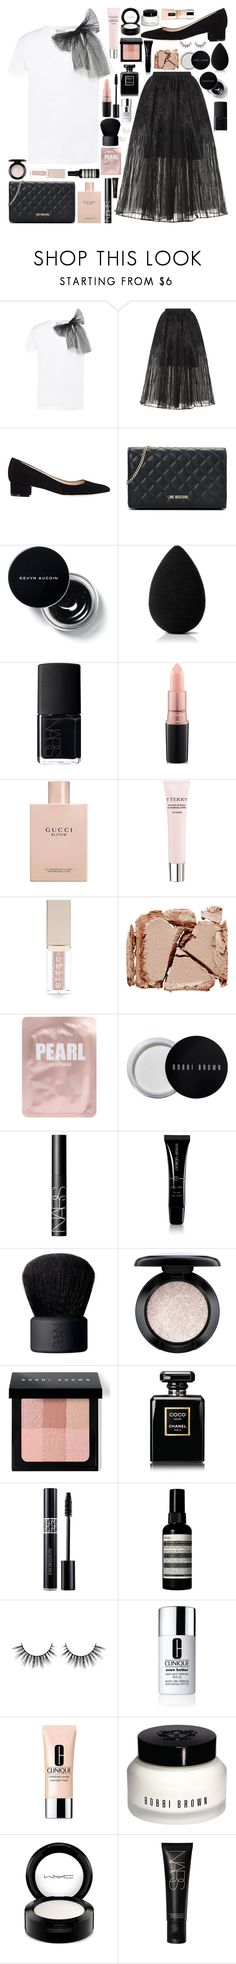 """""""Untitled #1074"""" by douxlaur ❤ liked on Polyvore featuring RED Valentino, Elie Saab, Manolo Blahnik, Love Moschino, beautyblender, NARS Cosmetics, MAC Cosmetics, Gucci, By Terry and Stila"""